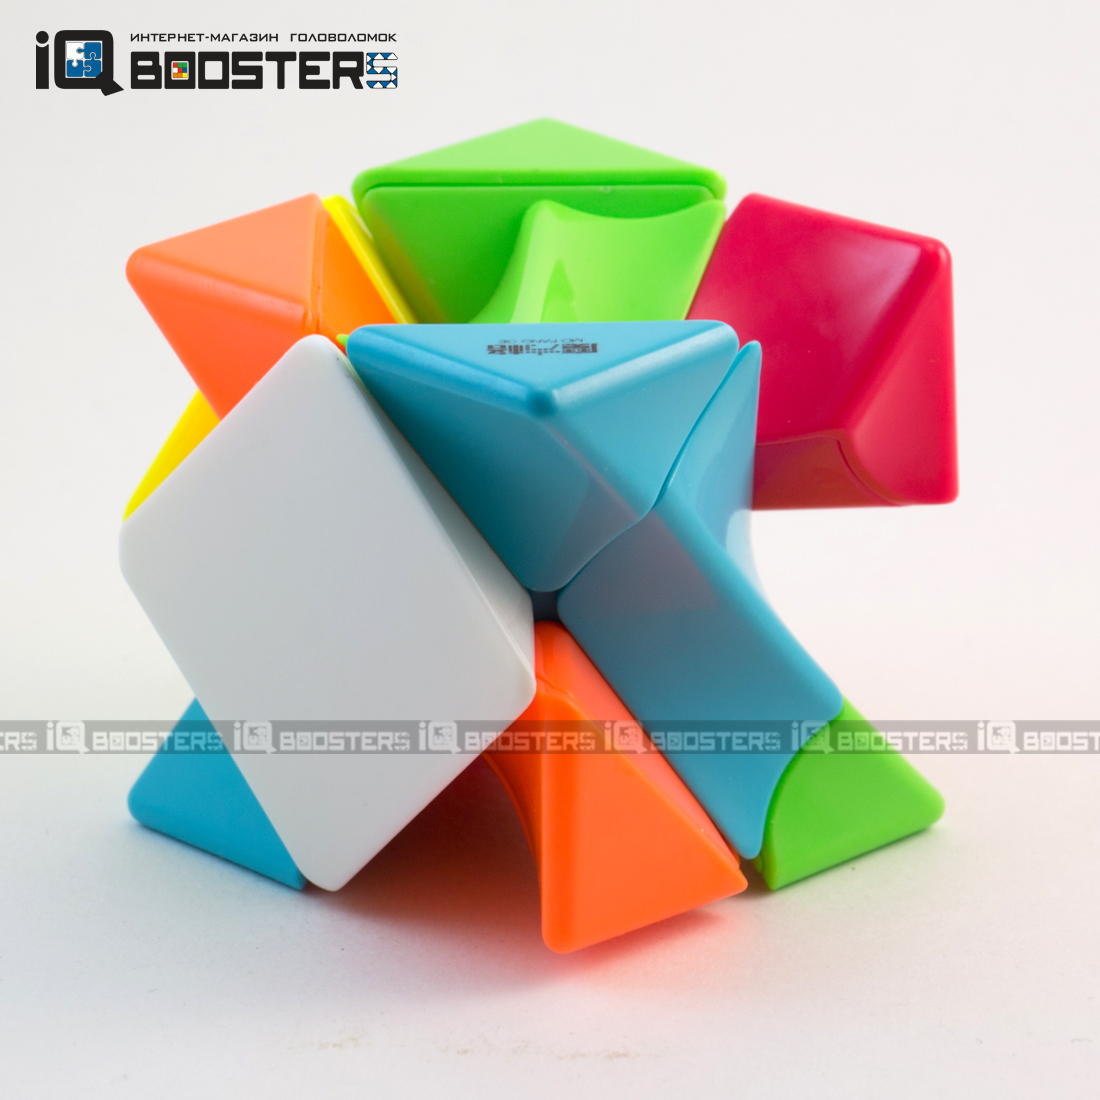 mfg_twisty_skewb_c3_1